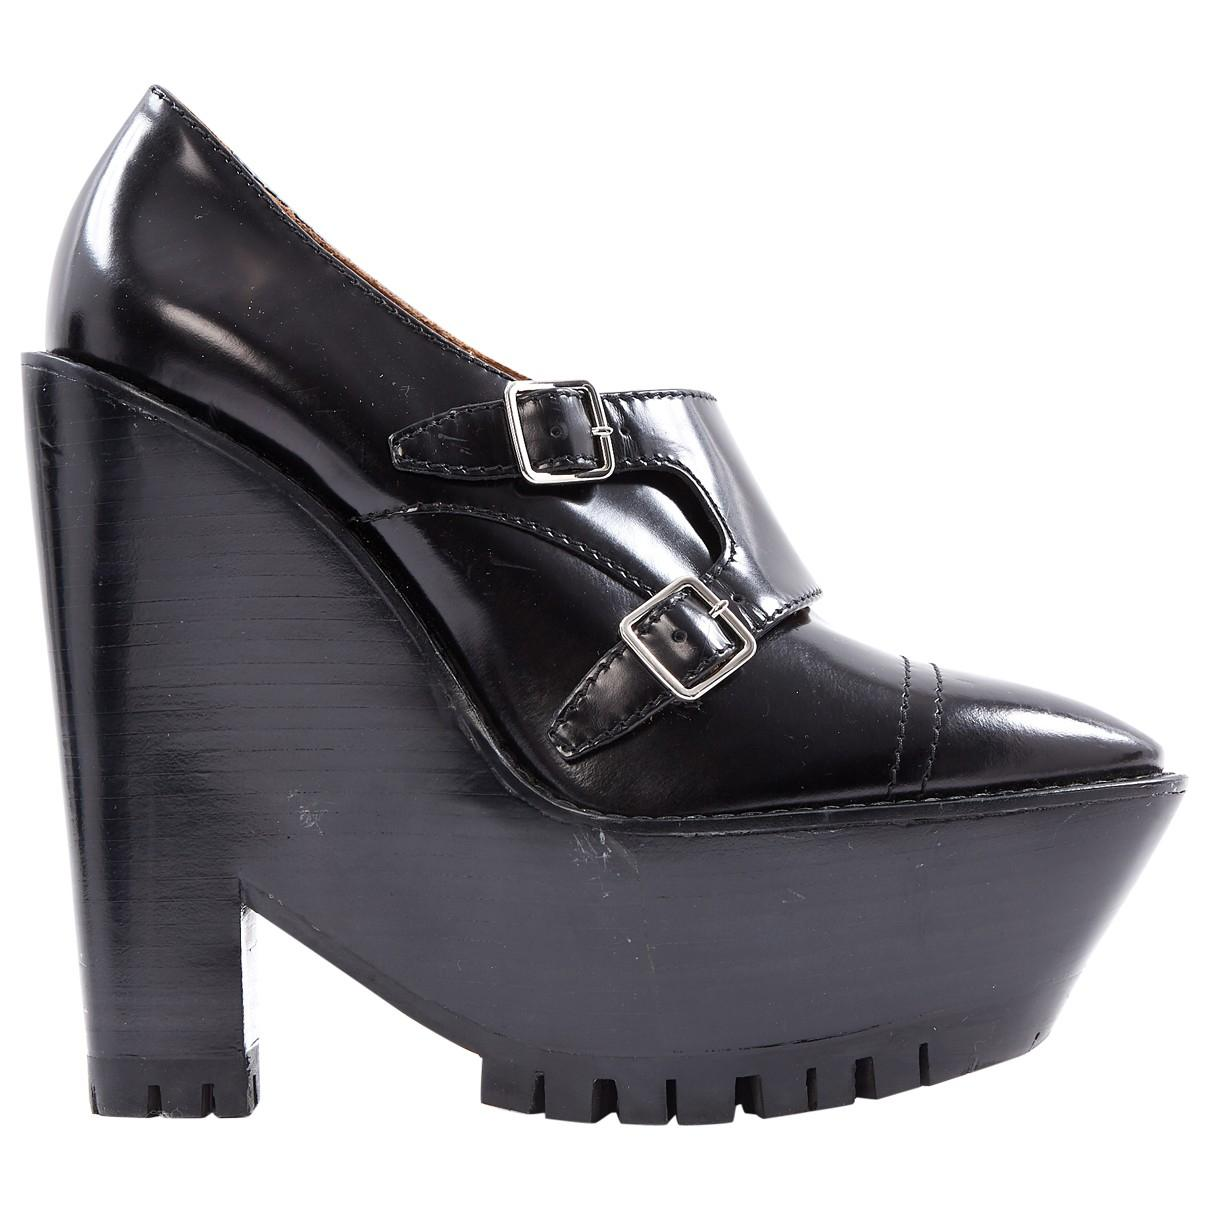 0e720dc20e9a Burberry. Women s Black Pre-owned Leather Heels. £183 From Vestiaire  Collective ...